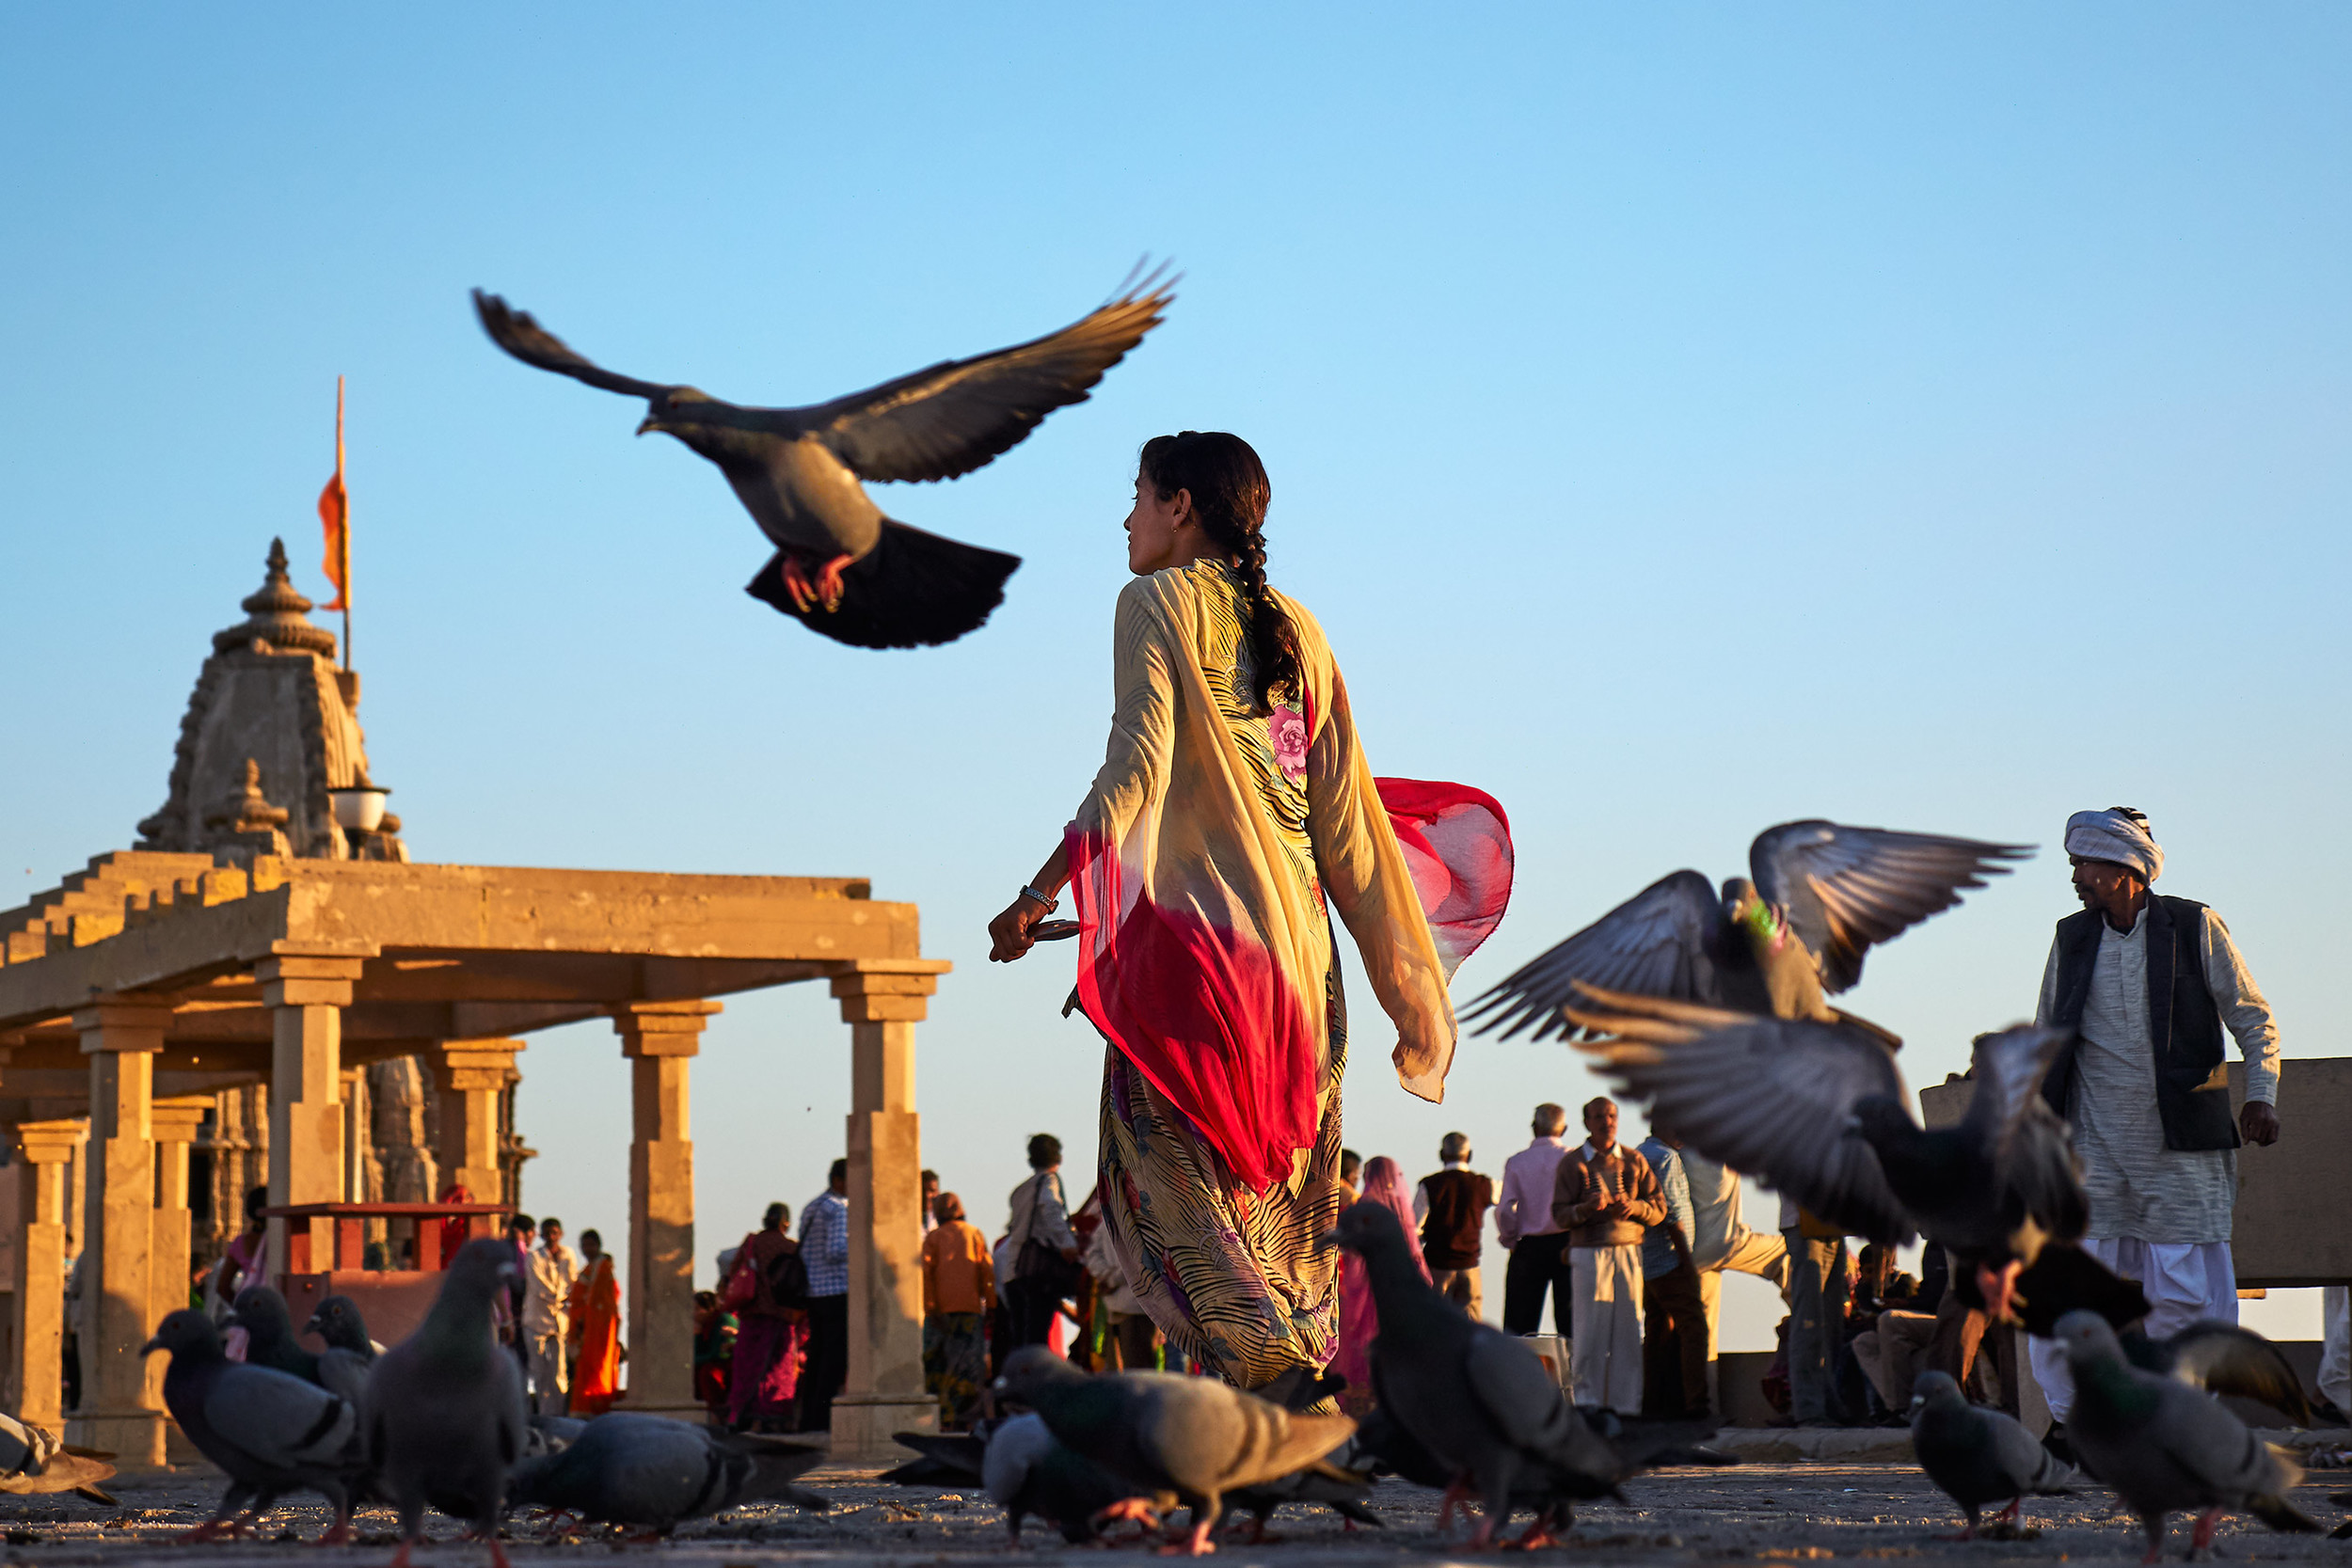 Pigeons in the air at Dwarka